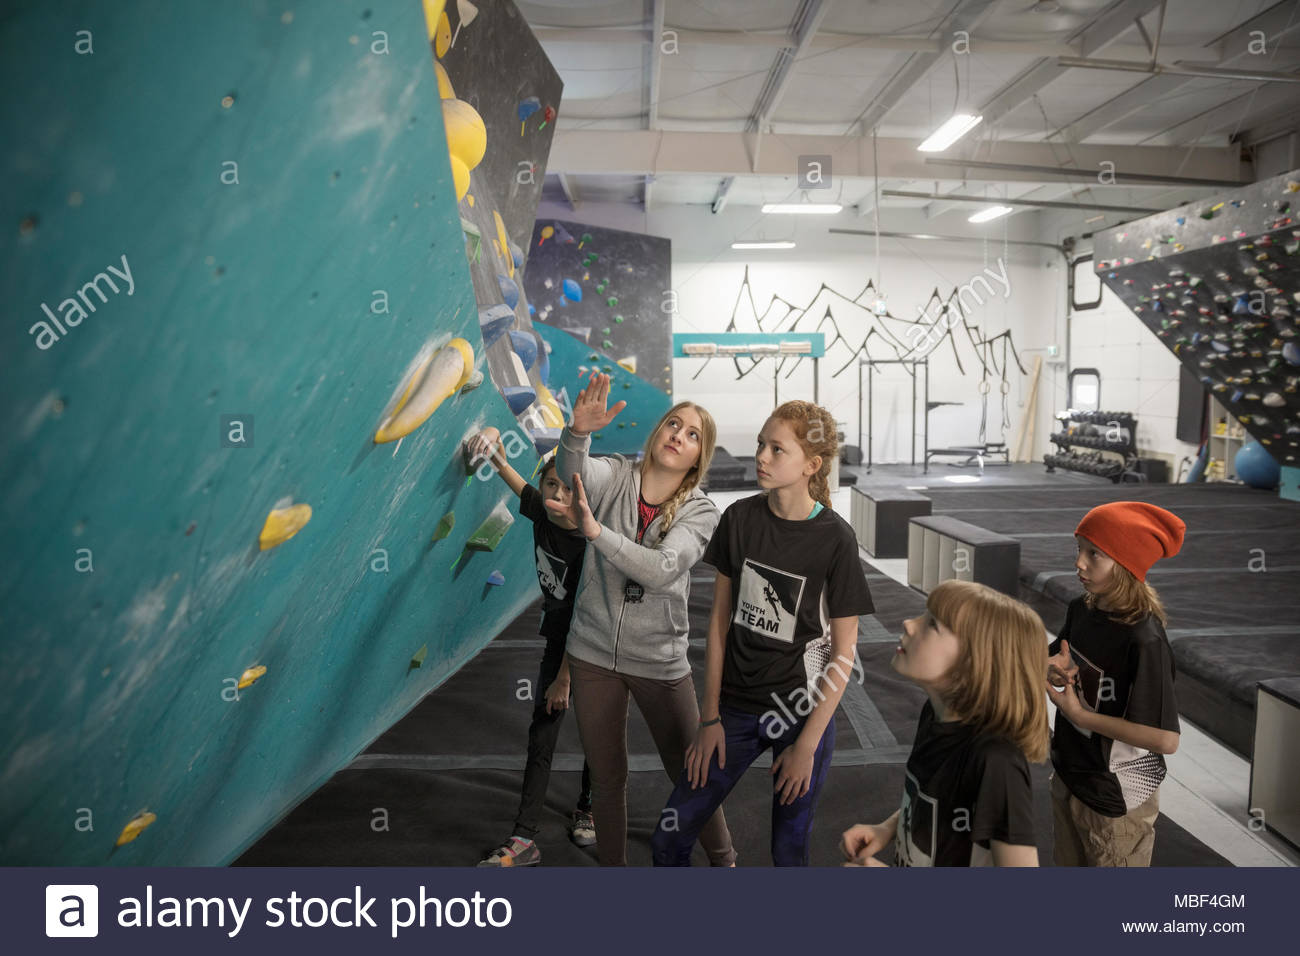 Female instructor teaching girl rock climbing students at climbing wall in climbing gym - Stock Image